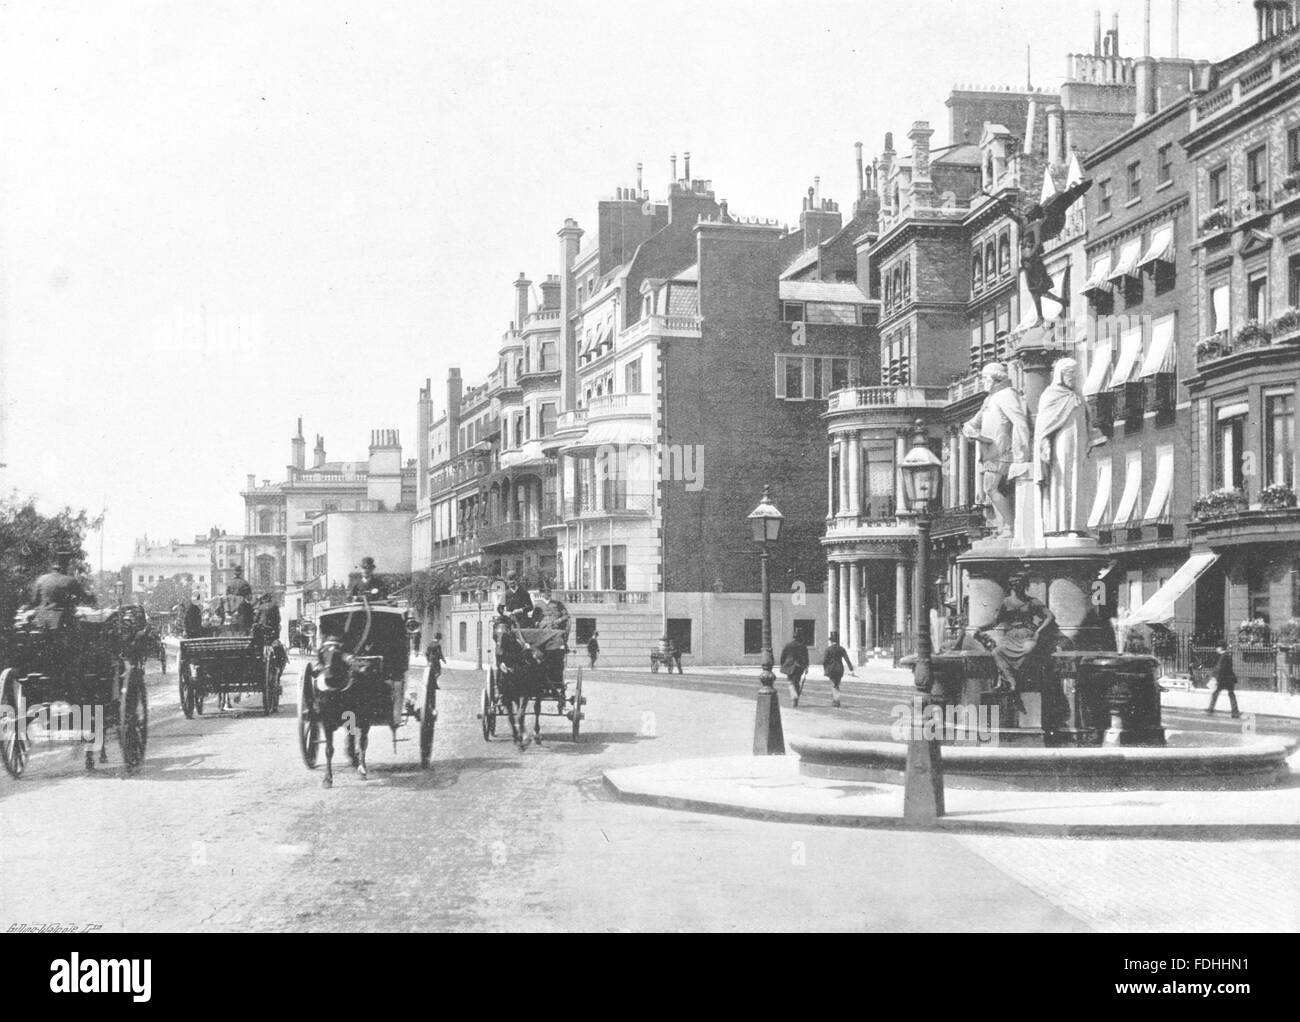 London Park Lane Looking North From Hamilton Place Antique Print Stock Photo Alamy